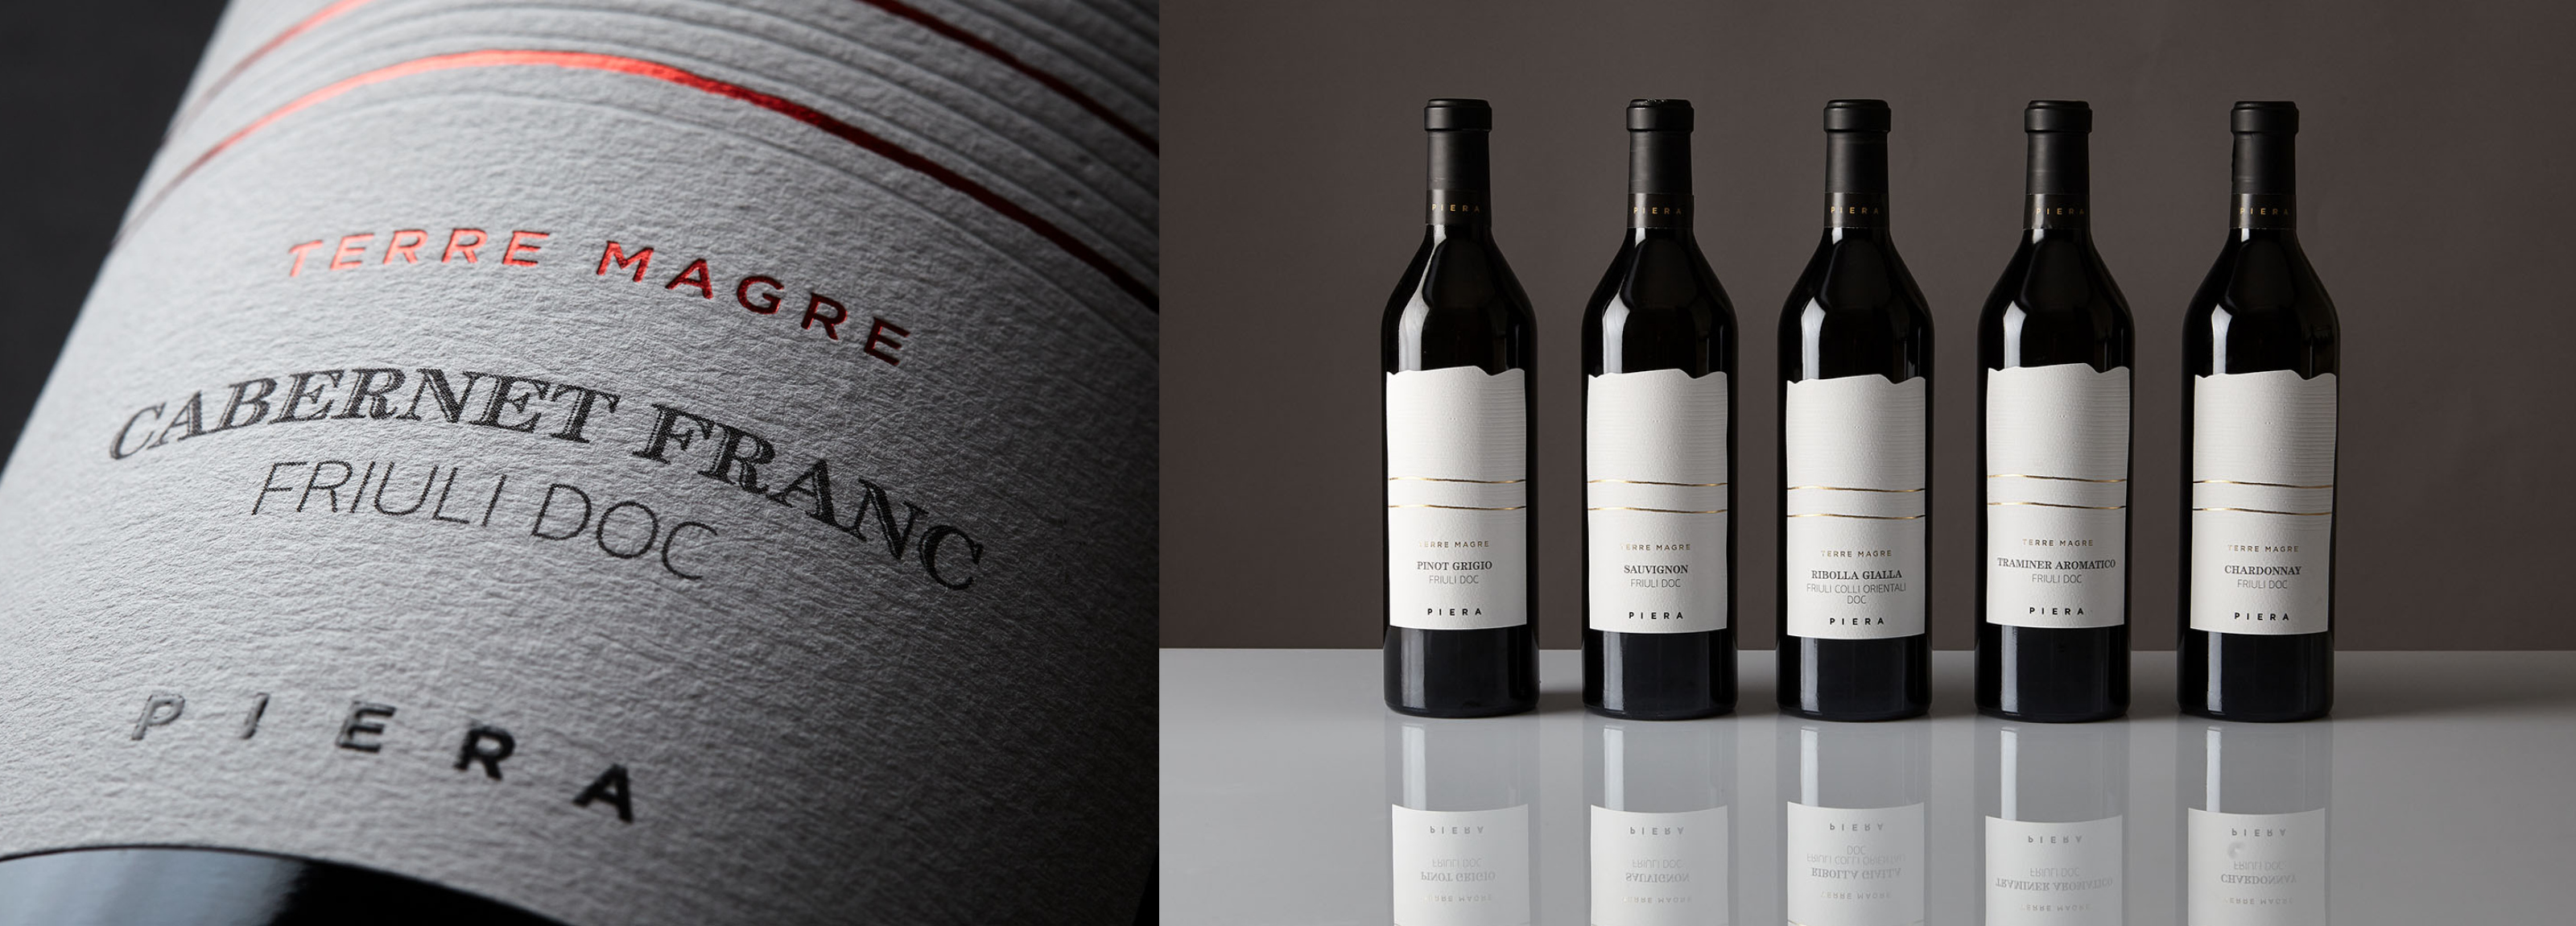 Piera 1899 - A new label for Terre Magre